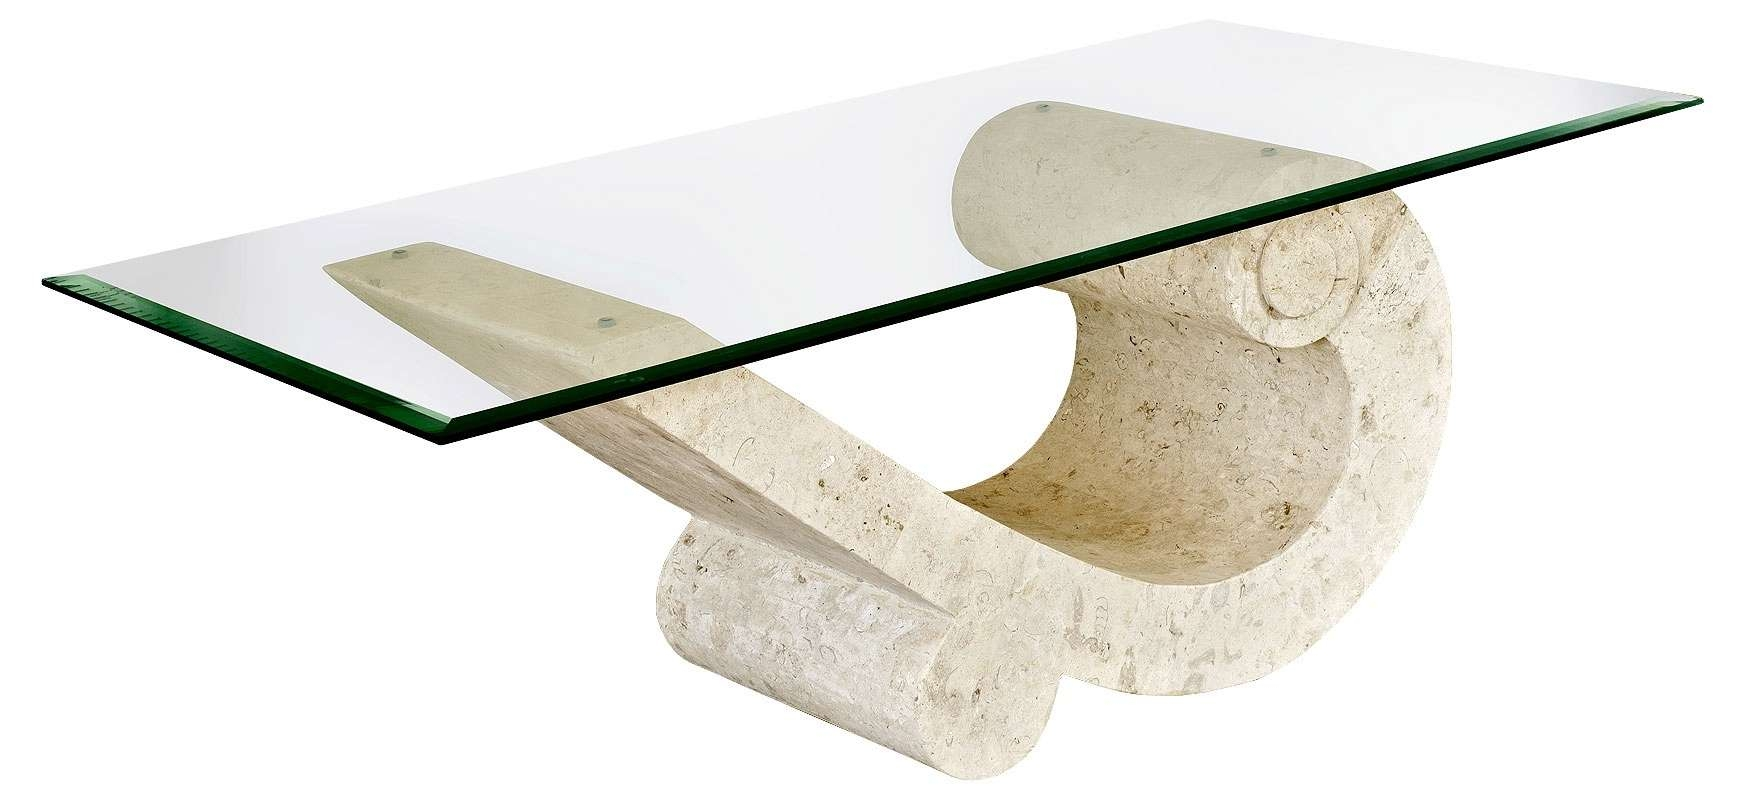 Most Recent Stone And Glass Coffee Tables In Fossil Stone And Glass Coffee Table Modern Minimalist Console (View 14 of 20)